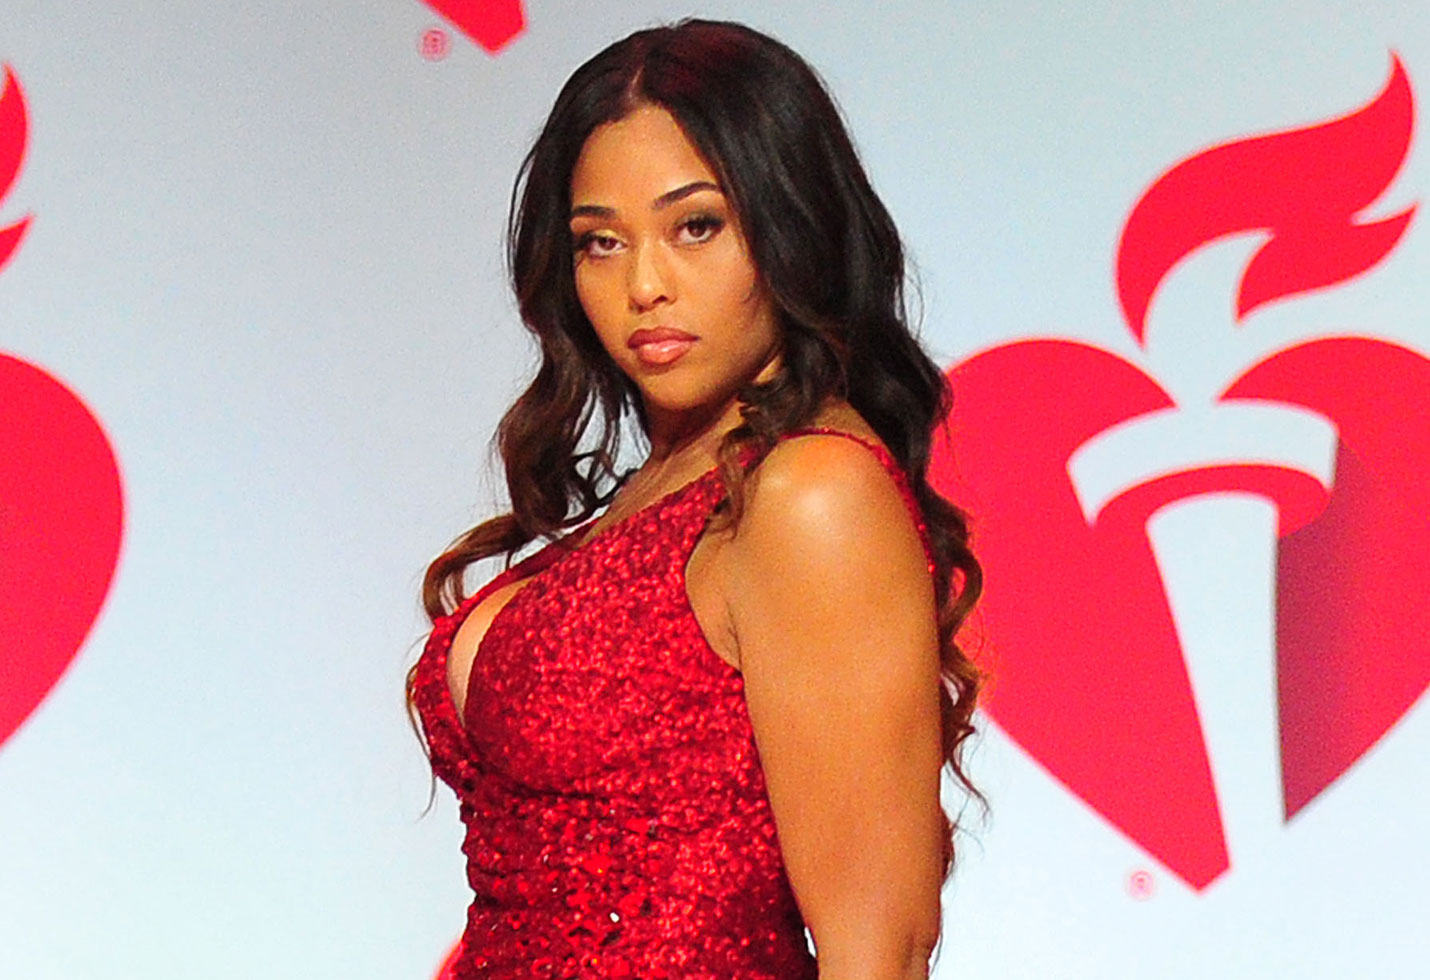 Jordyn Woods Sparks Cosmetic Interventions-Related Rumors